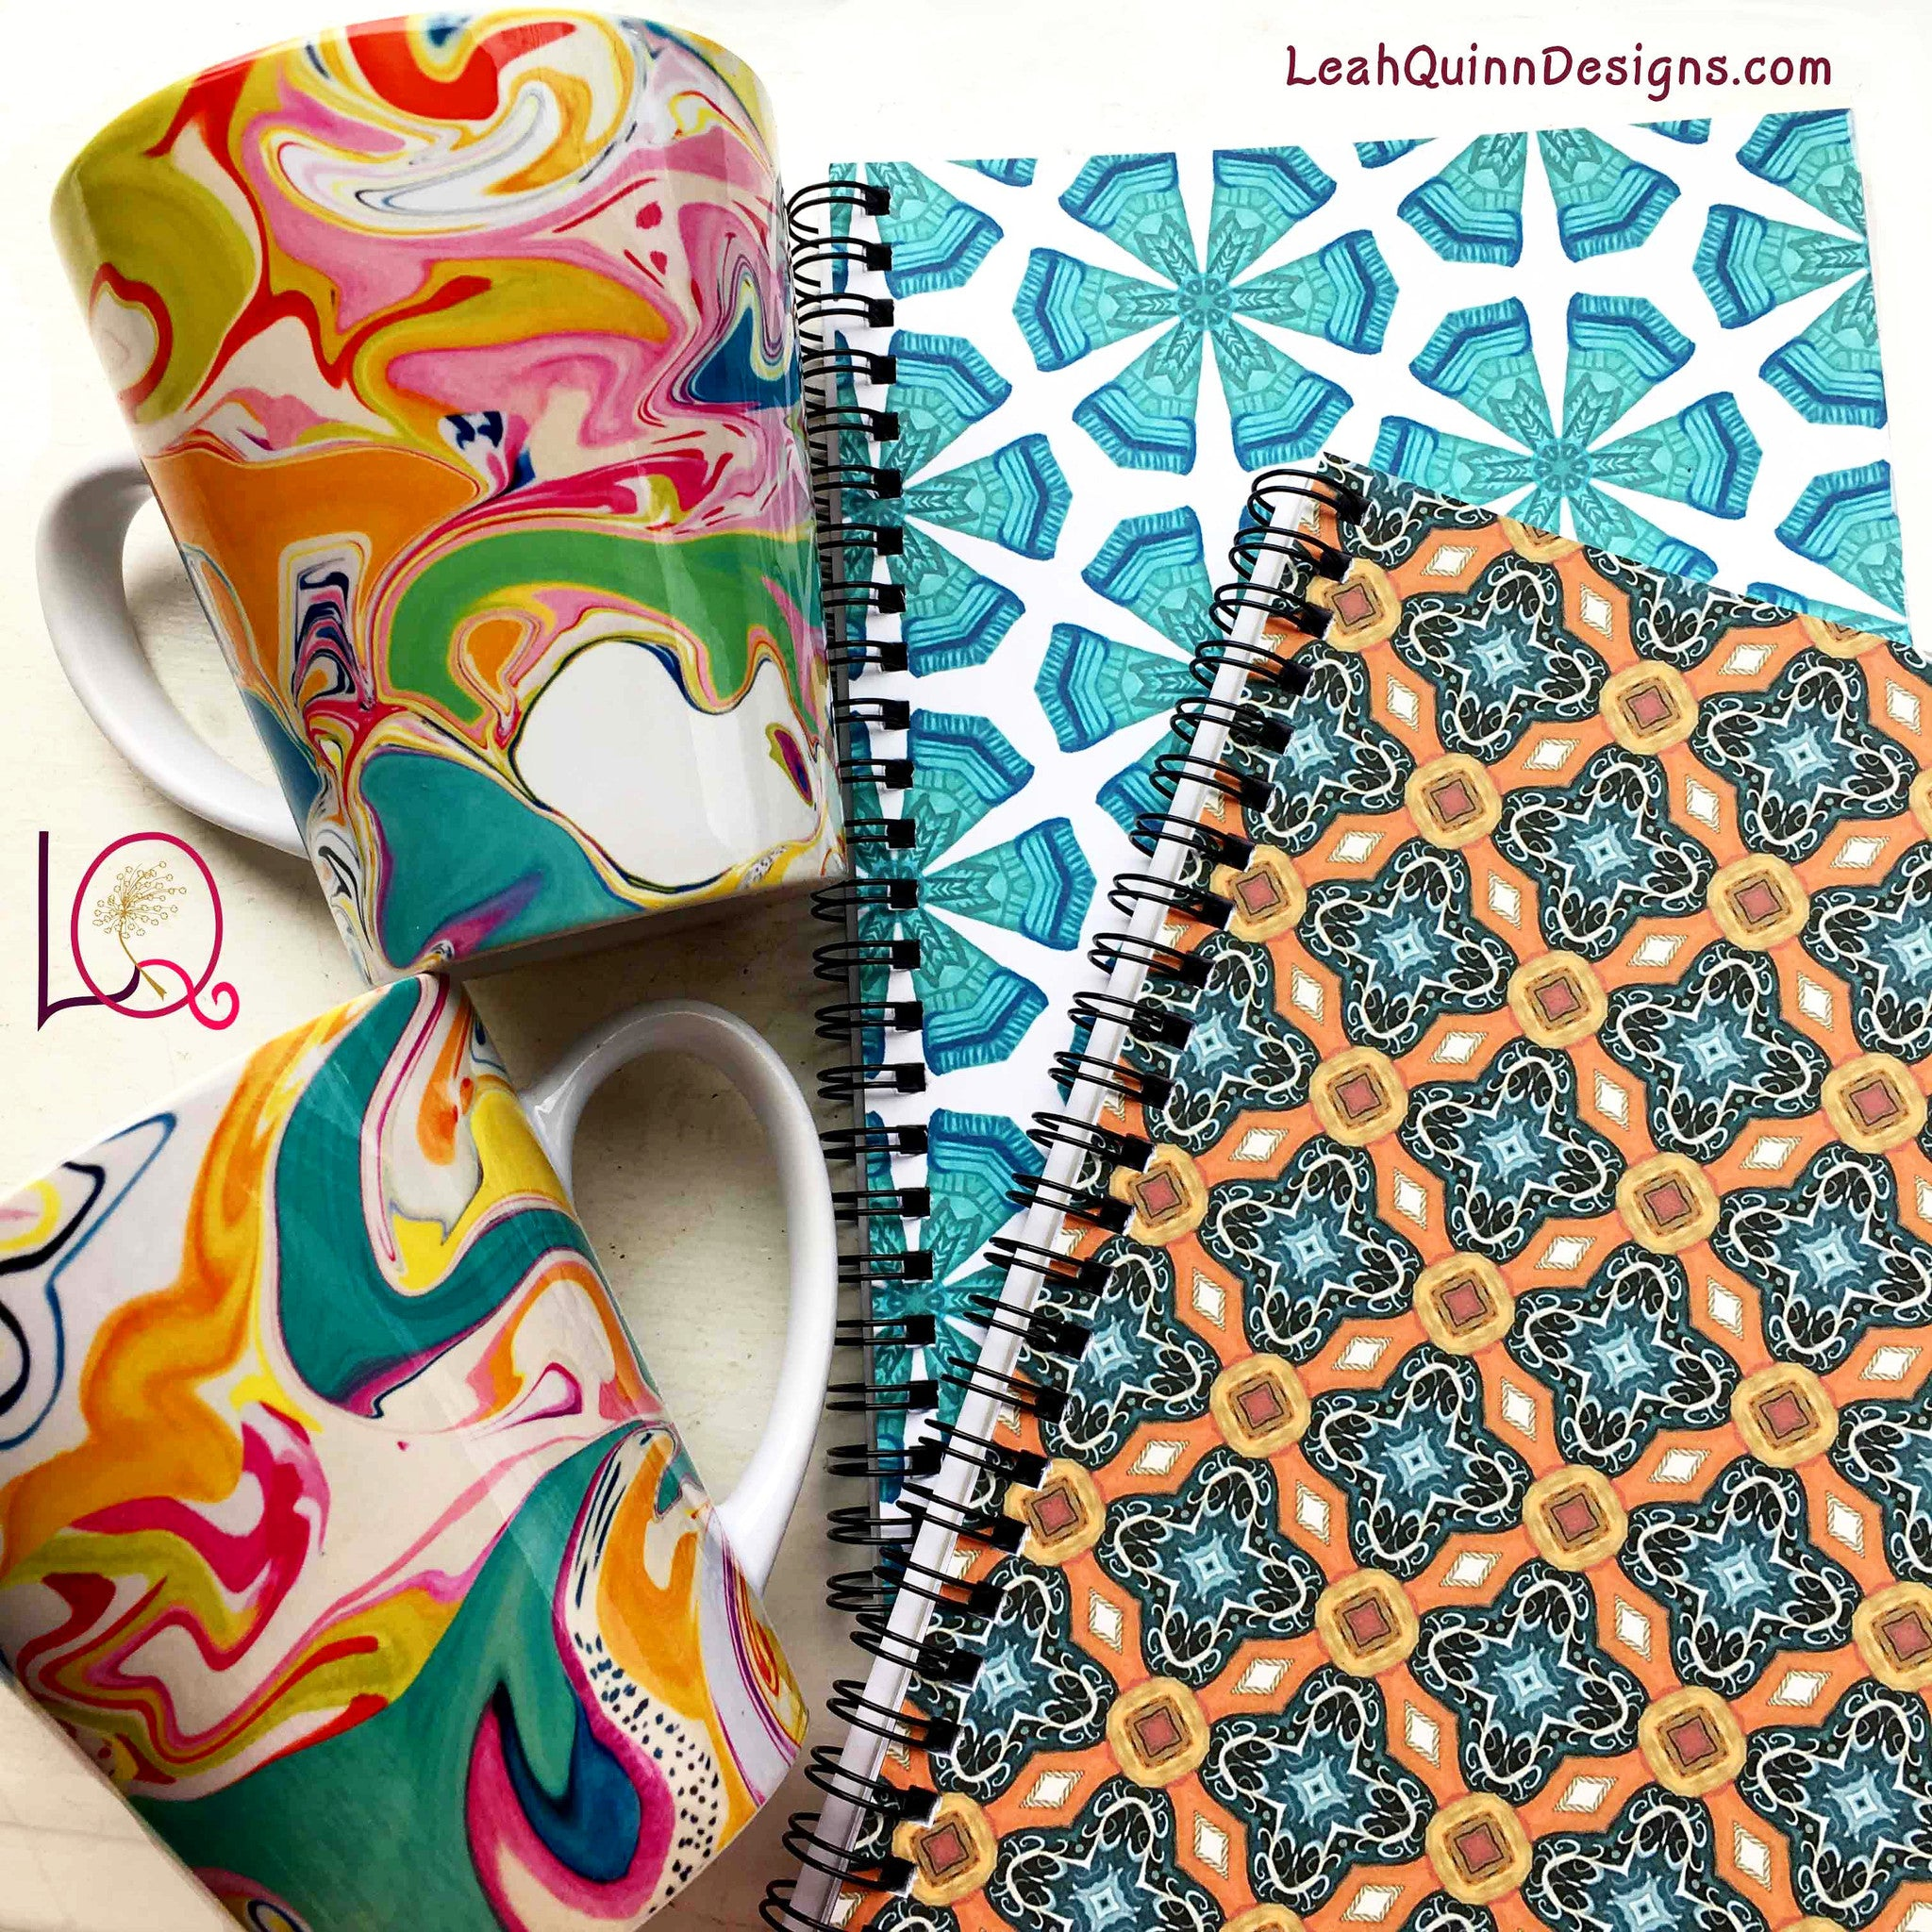 Apparel U0026 Home Decor Designers Collection By Leah Quinn